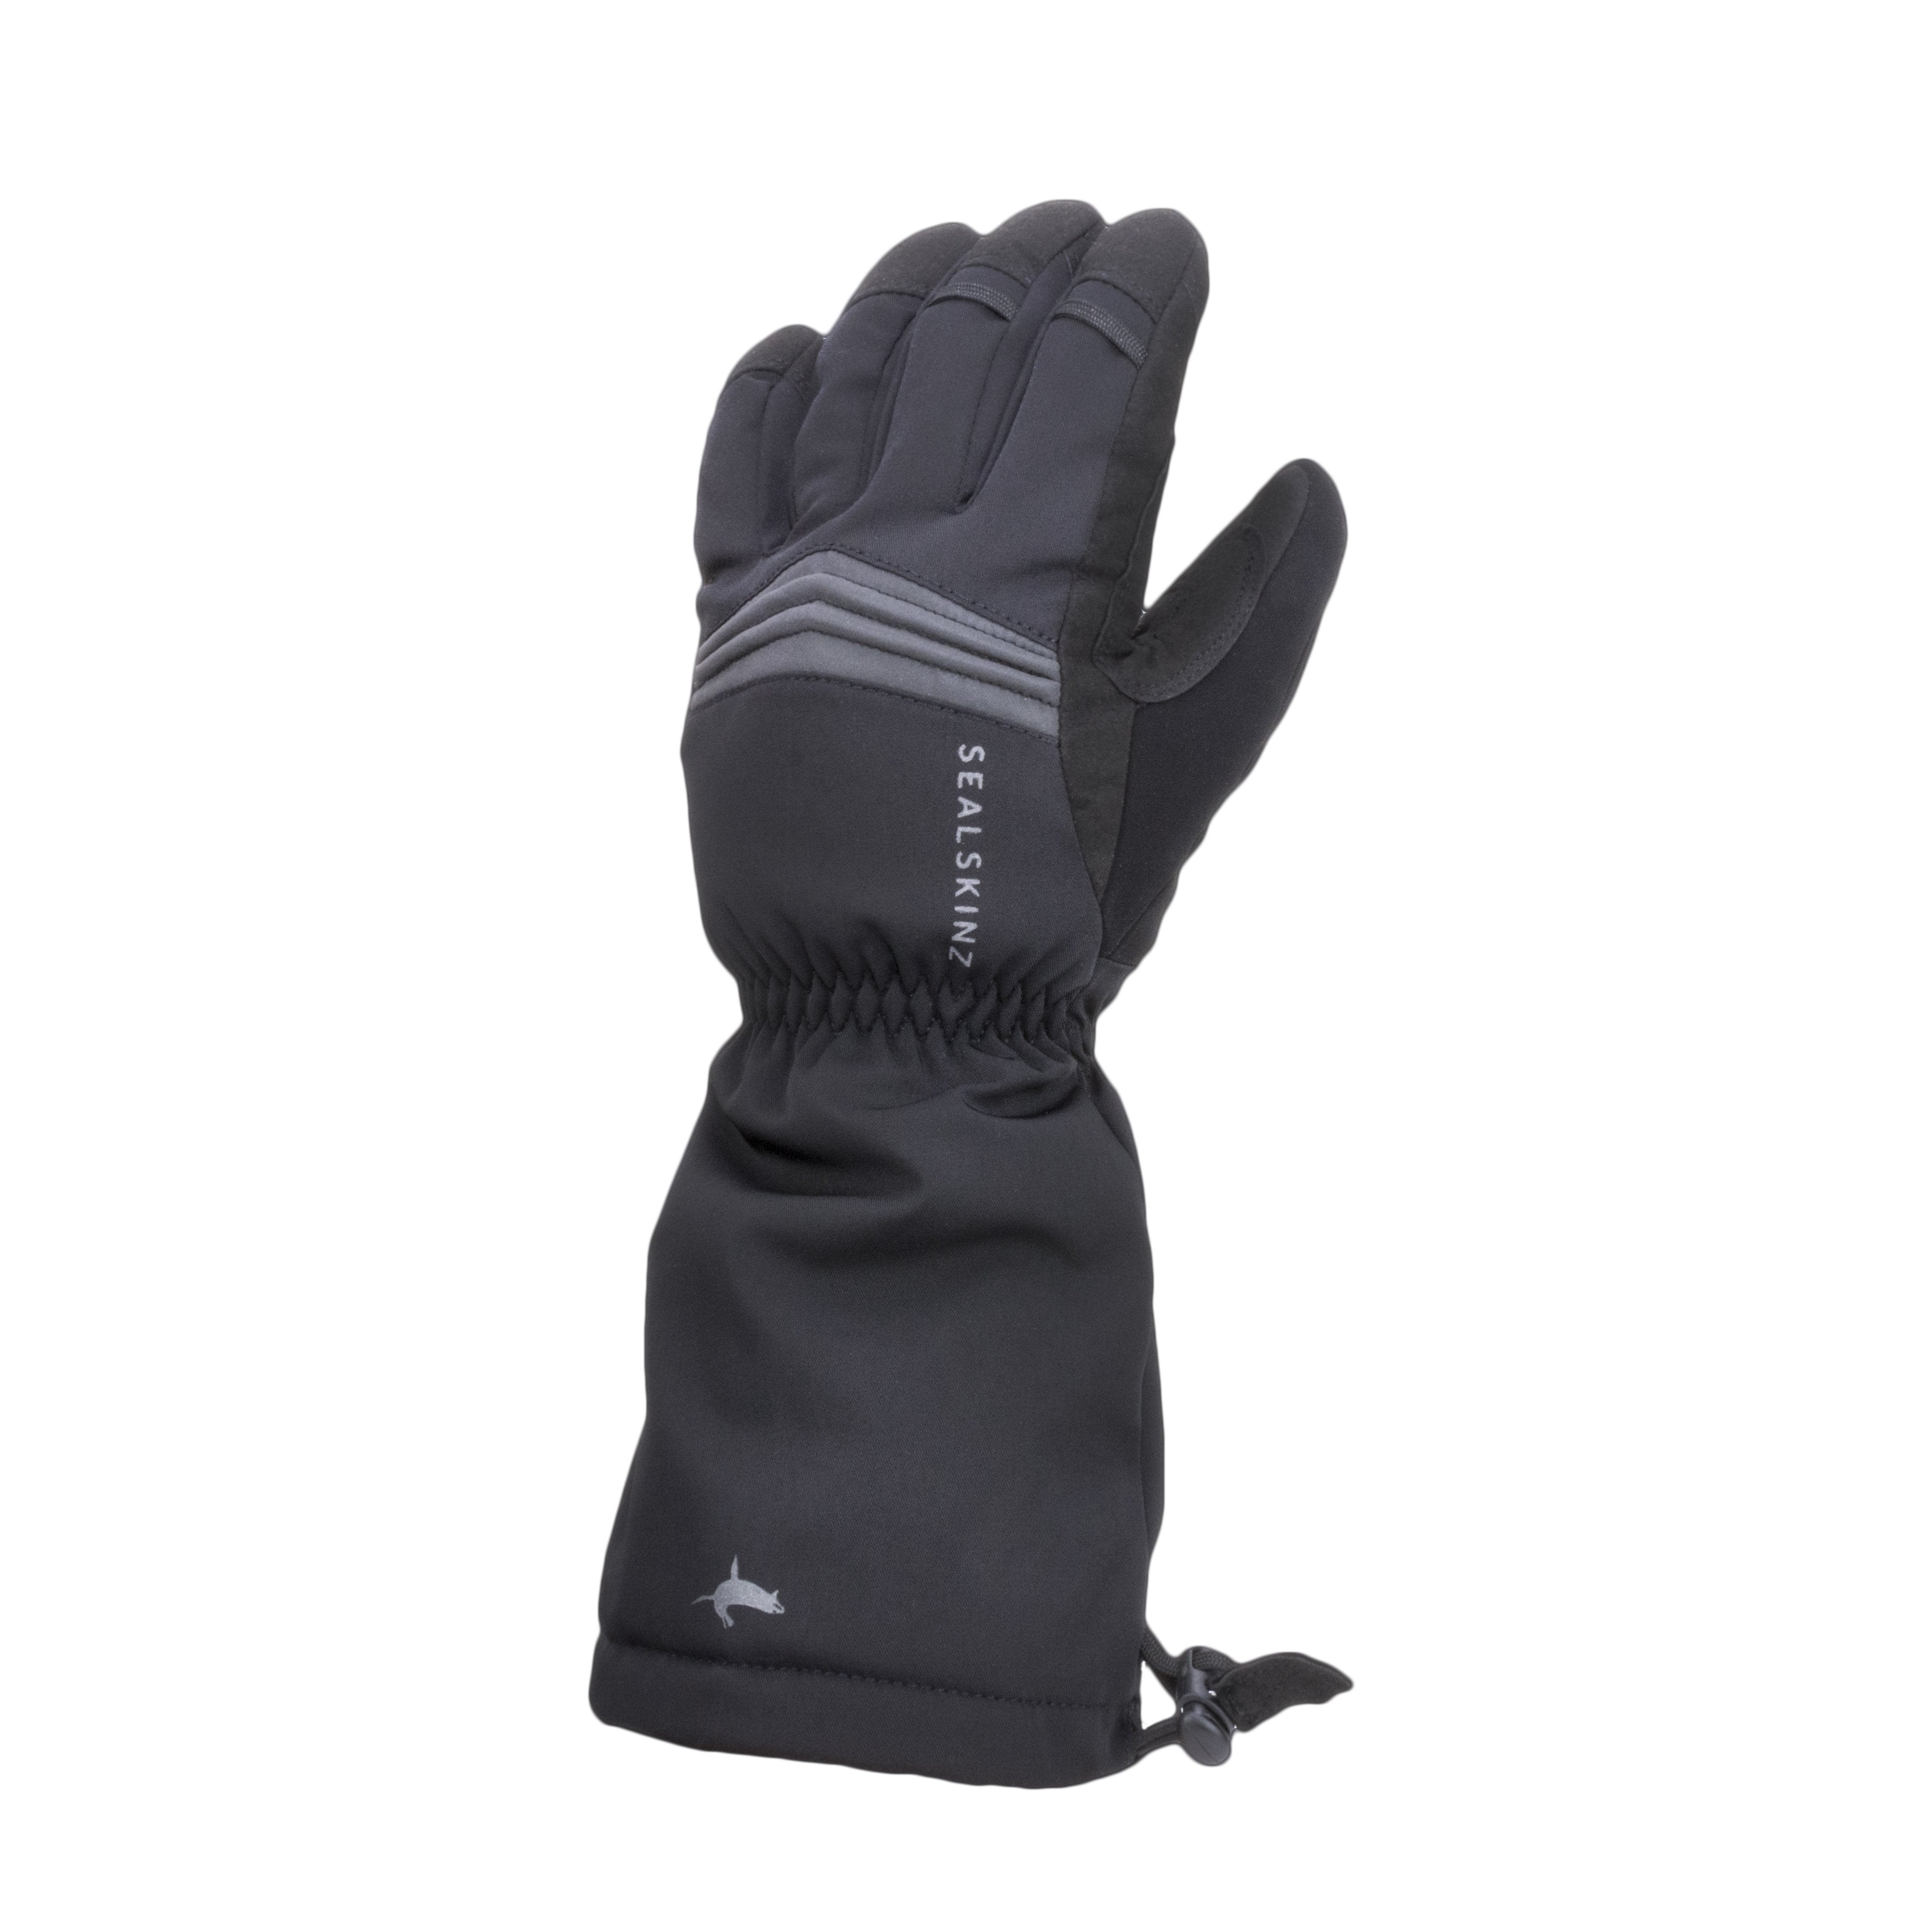 Waterproof Extreme Cold Weather Reflective Gauntlet